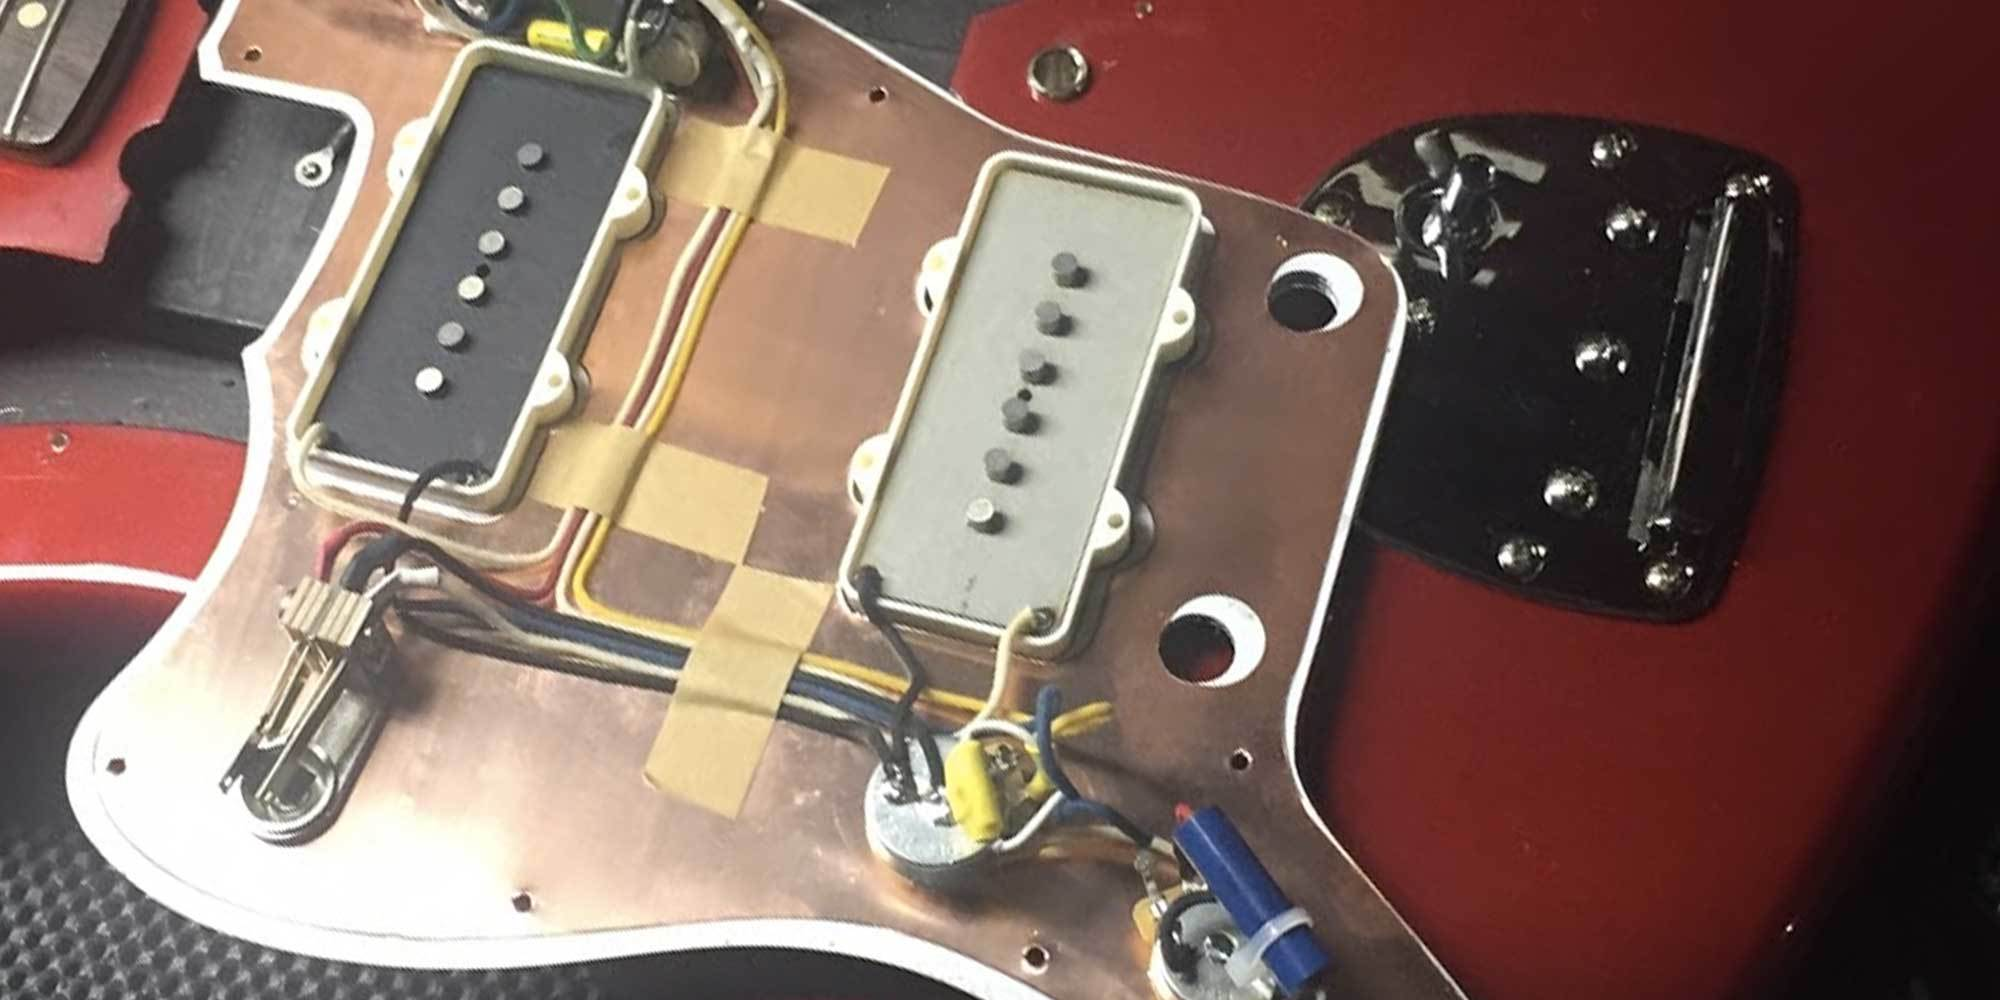 Upgrading Jazzmaster Electronics Part II: Wiring Mods